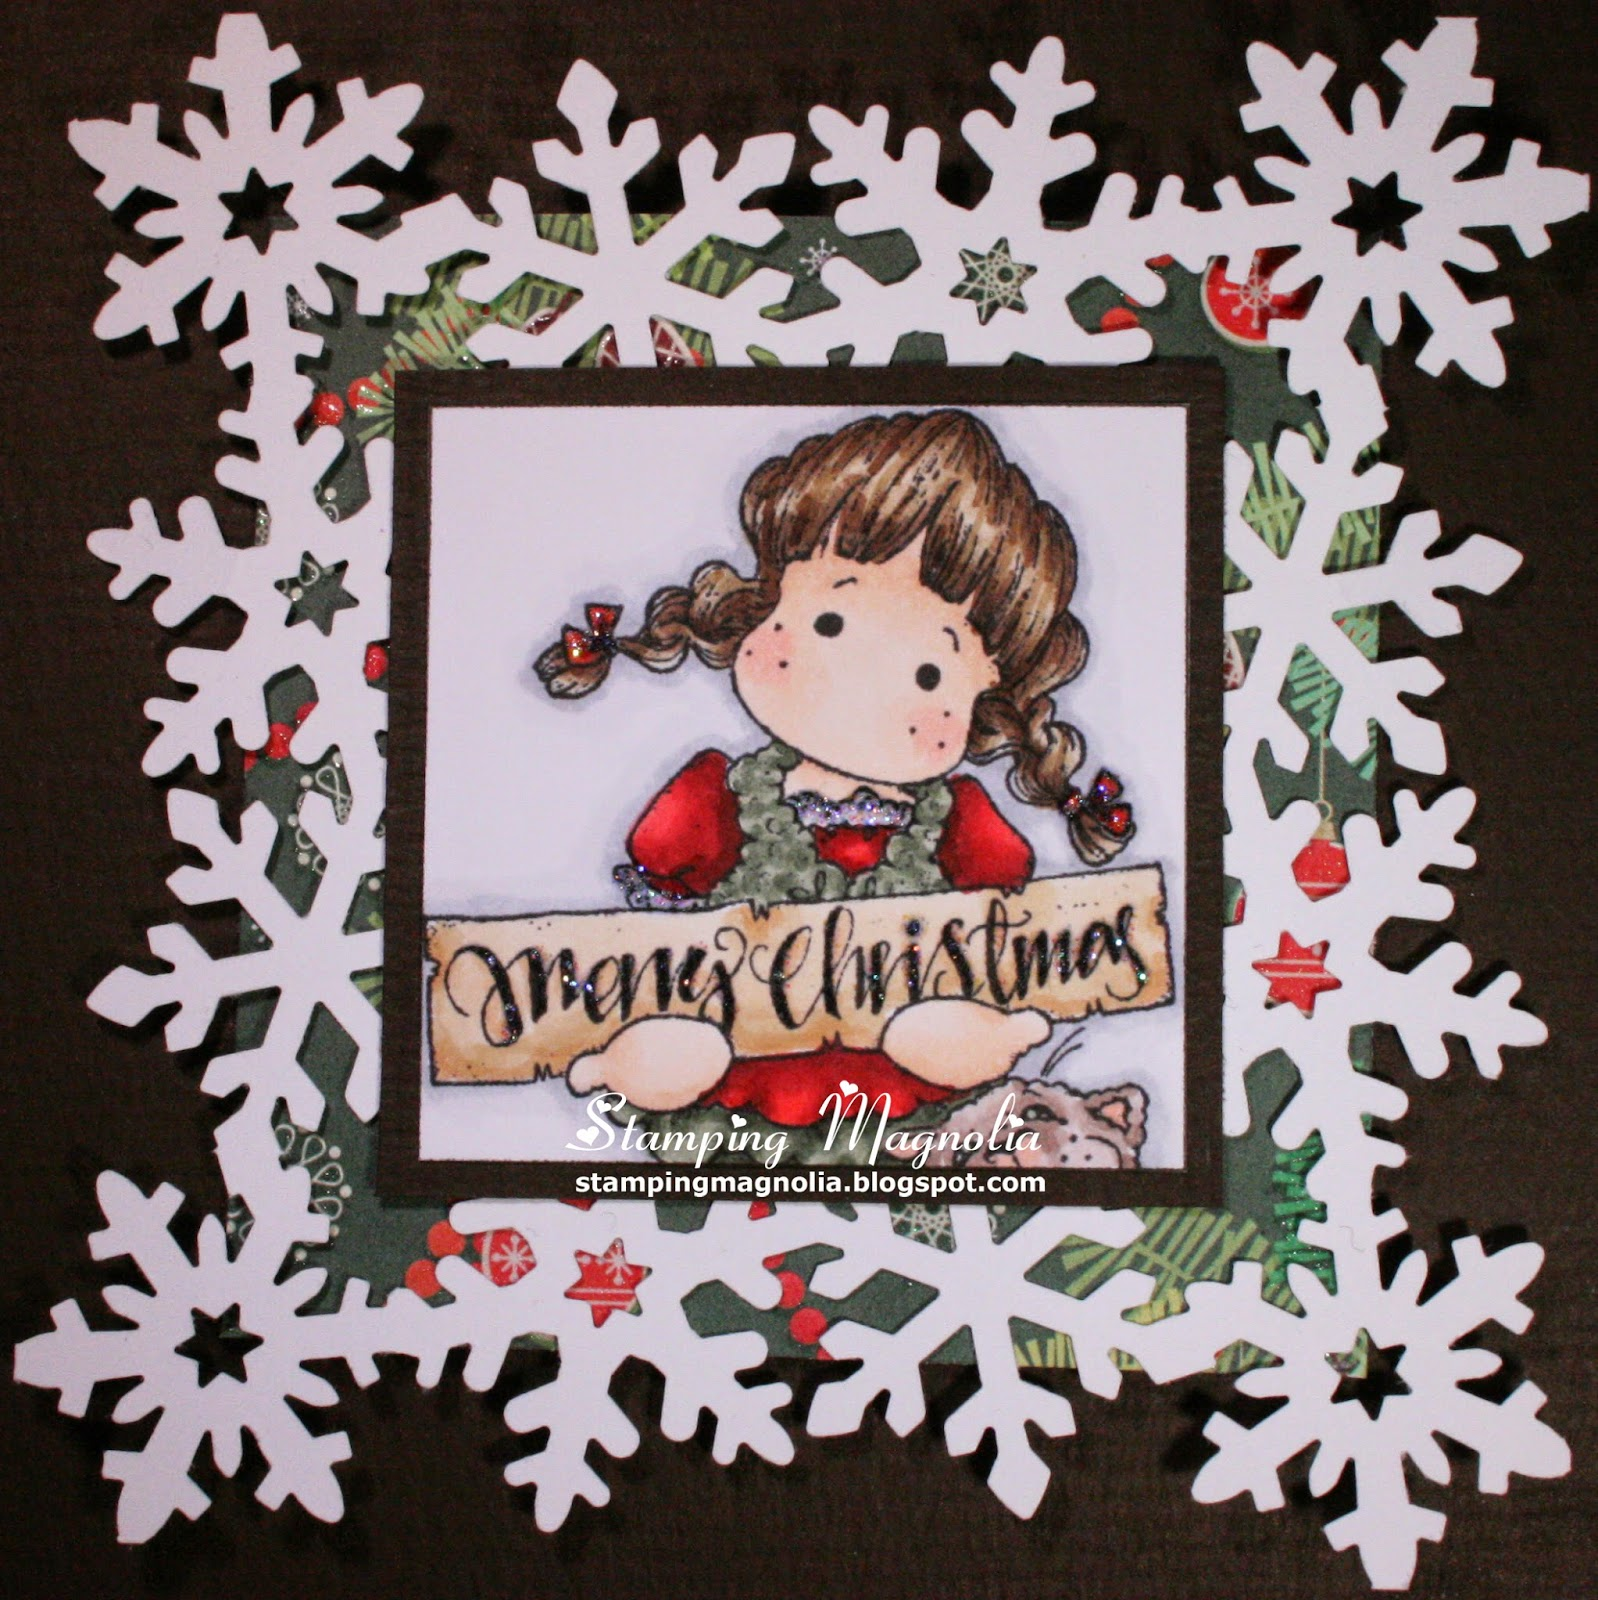 Coloring Magnolia Stamp Little Merry Christmas Collection - Christmas Tilda With Cat